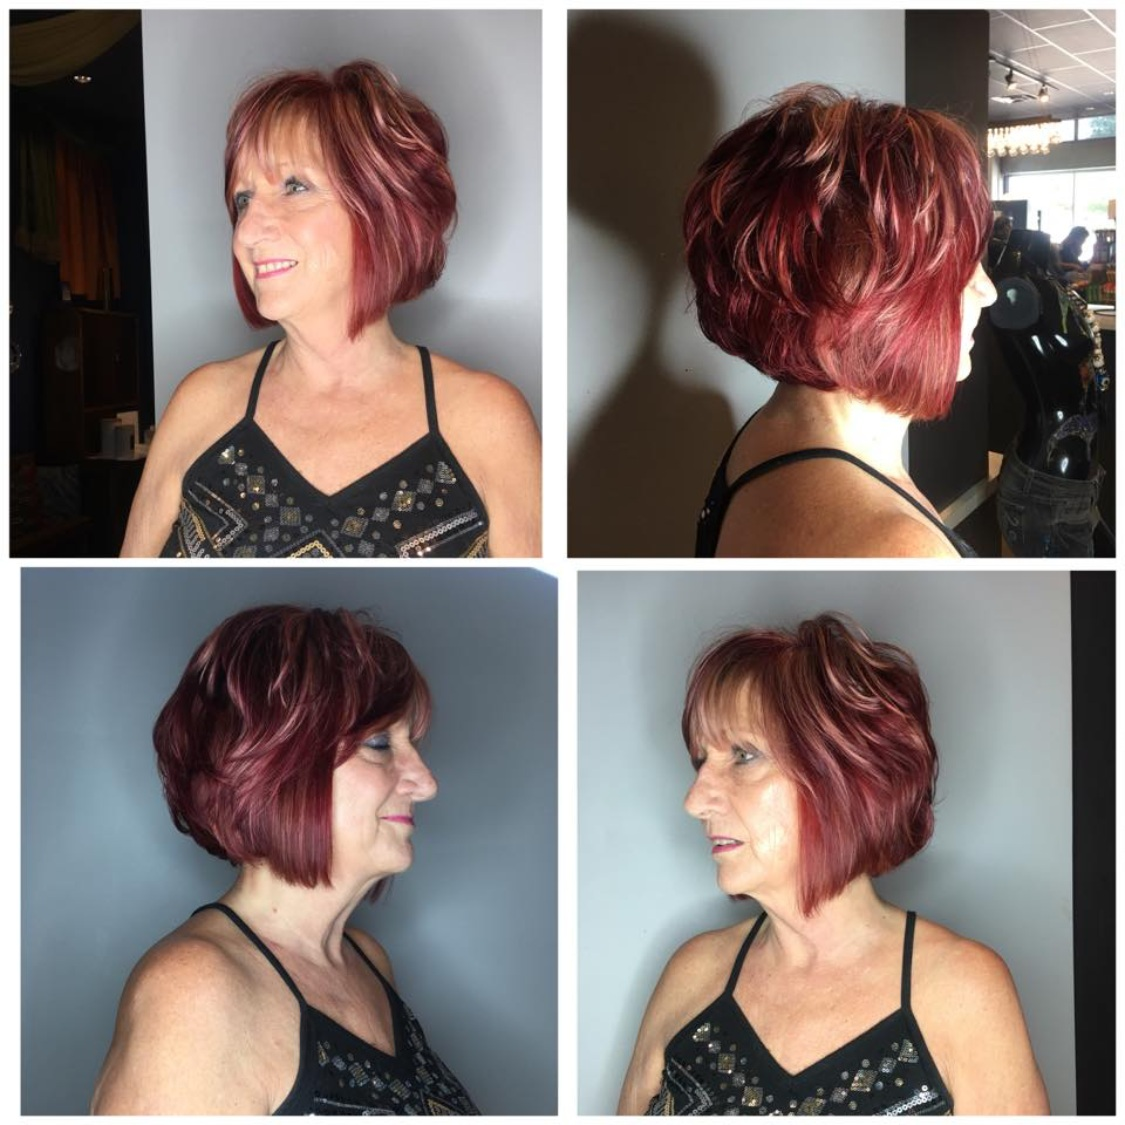 Rebecca Crosby Stylist Artistik Edge Hair Salon Lake Highlands Texas Red Hair.png